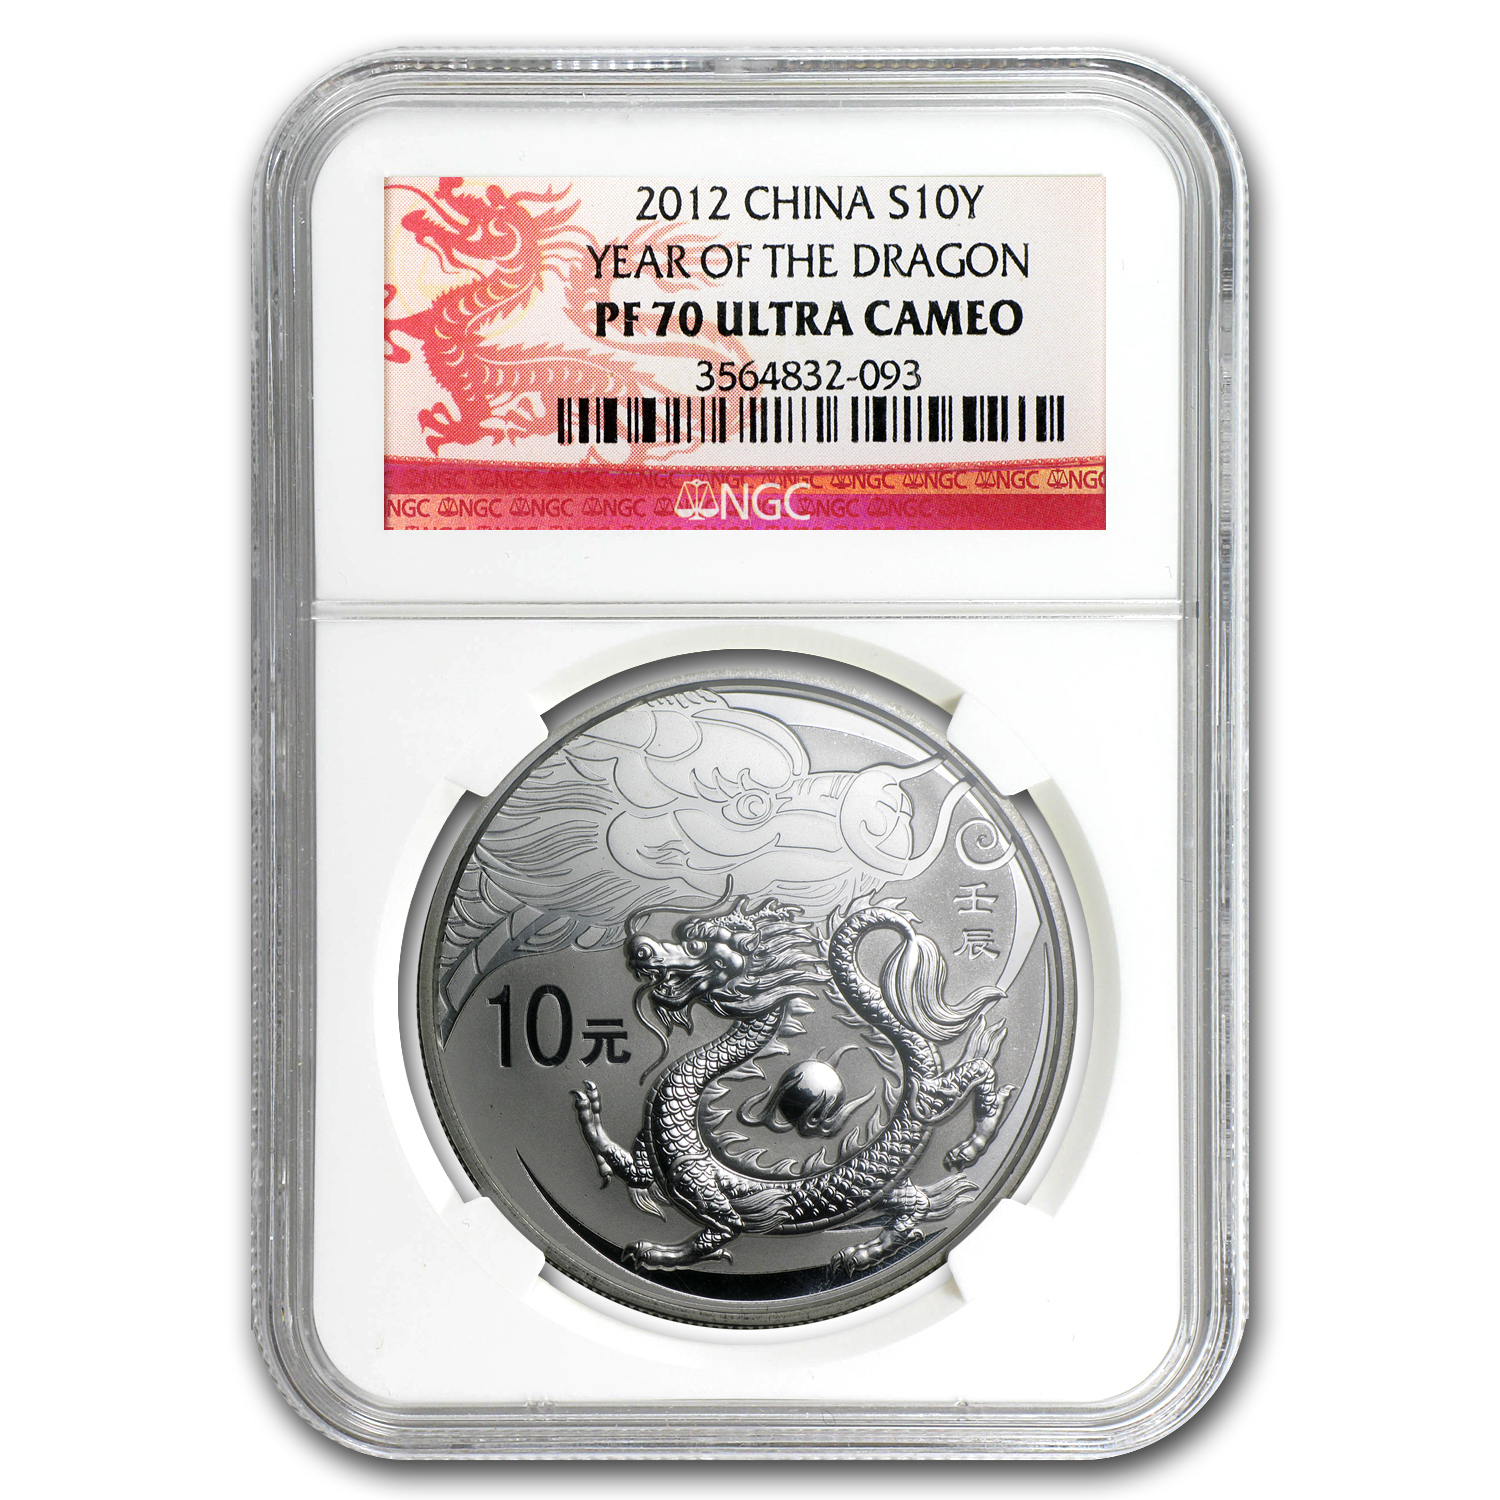 2012 China 1 Oz Silver Dragon Proof Pf 70 Ngc Silver